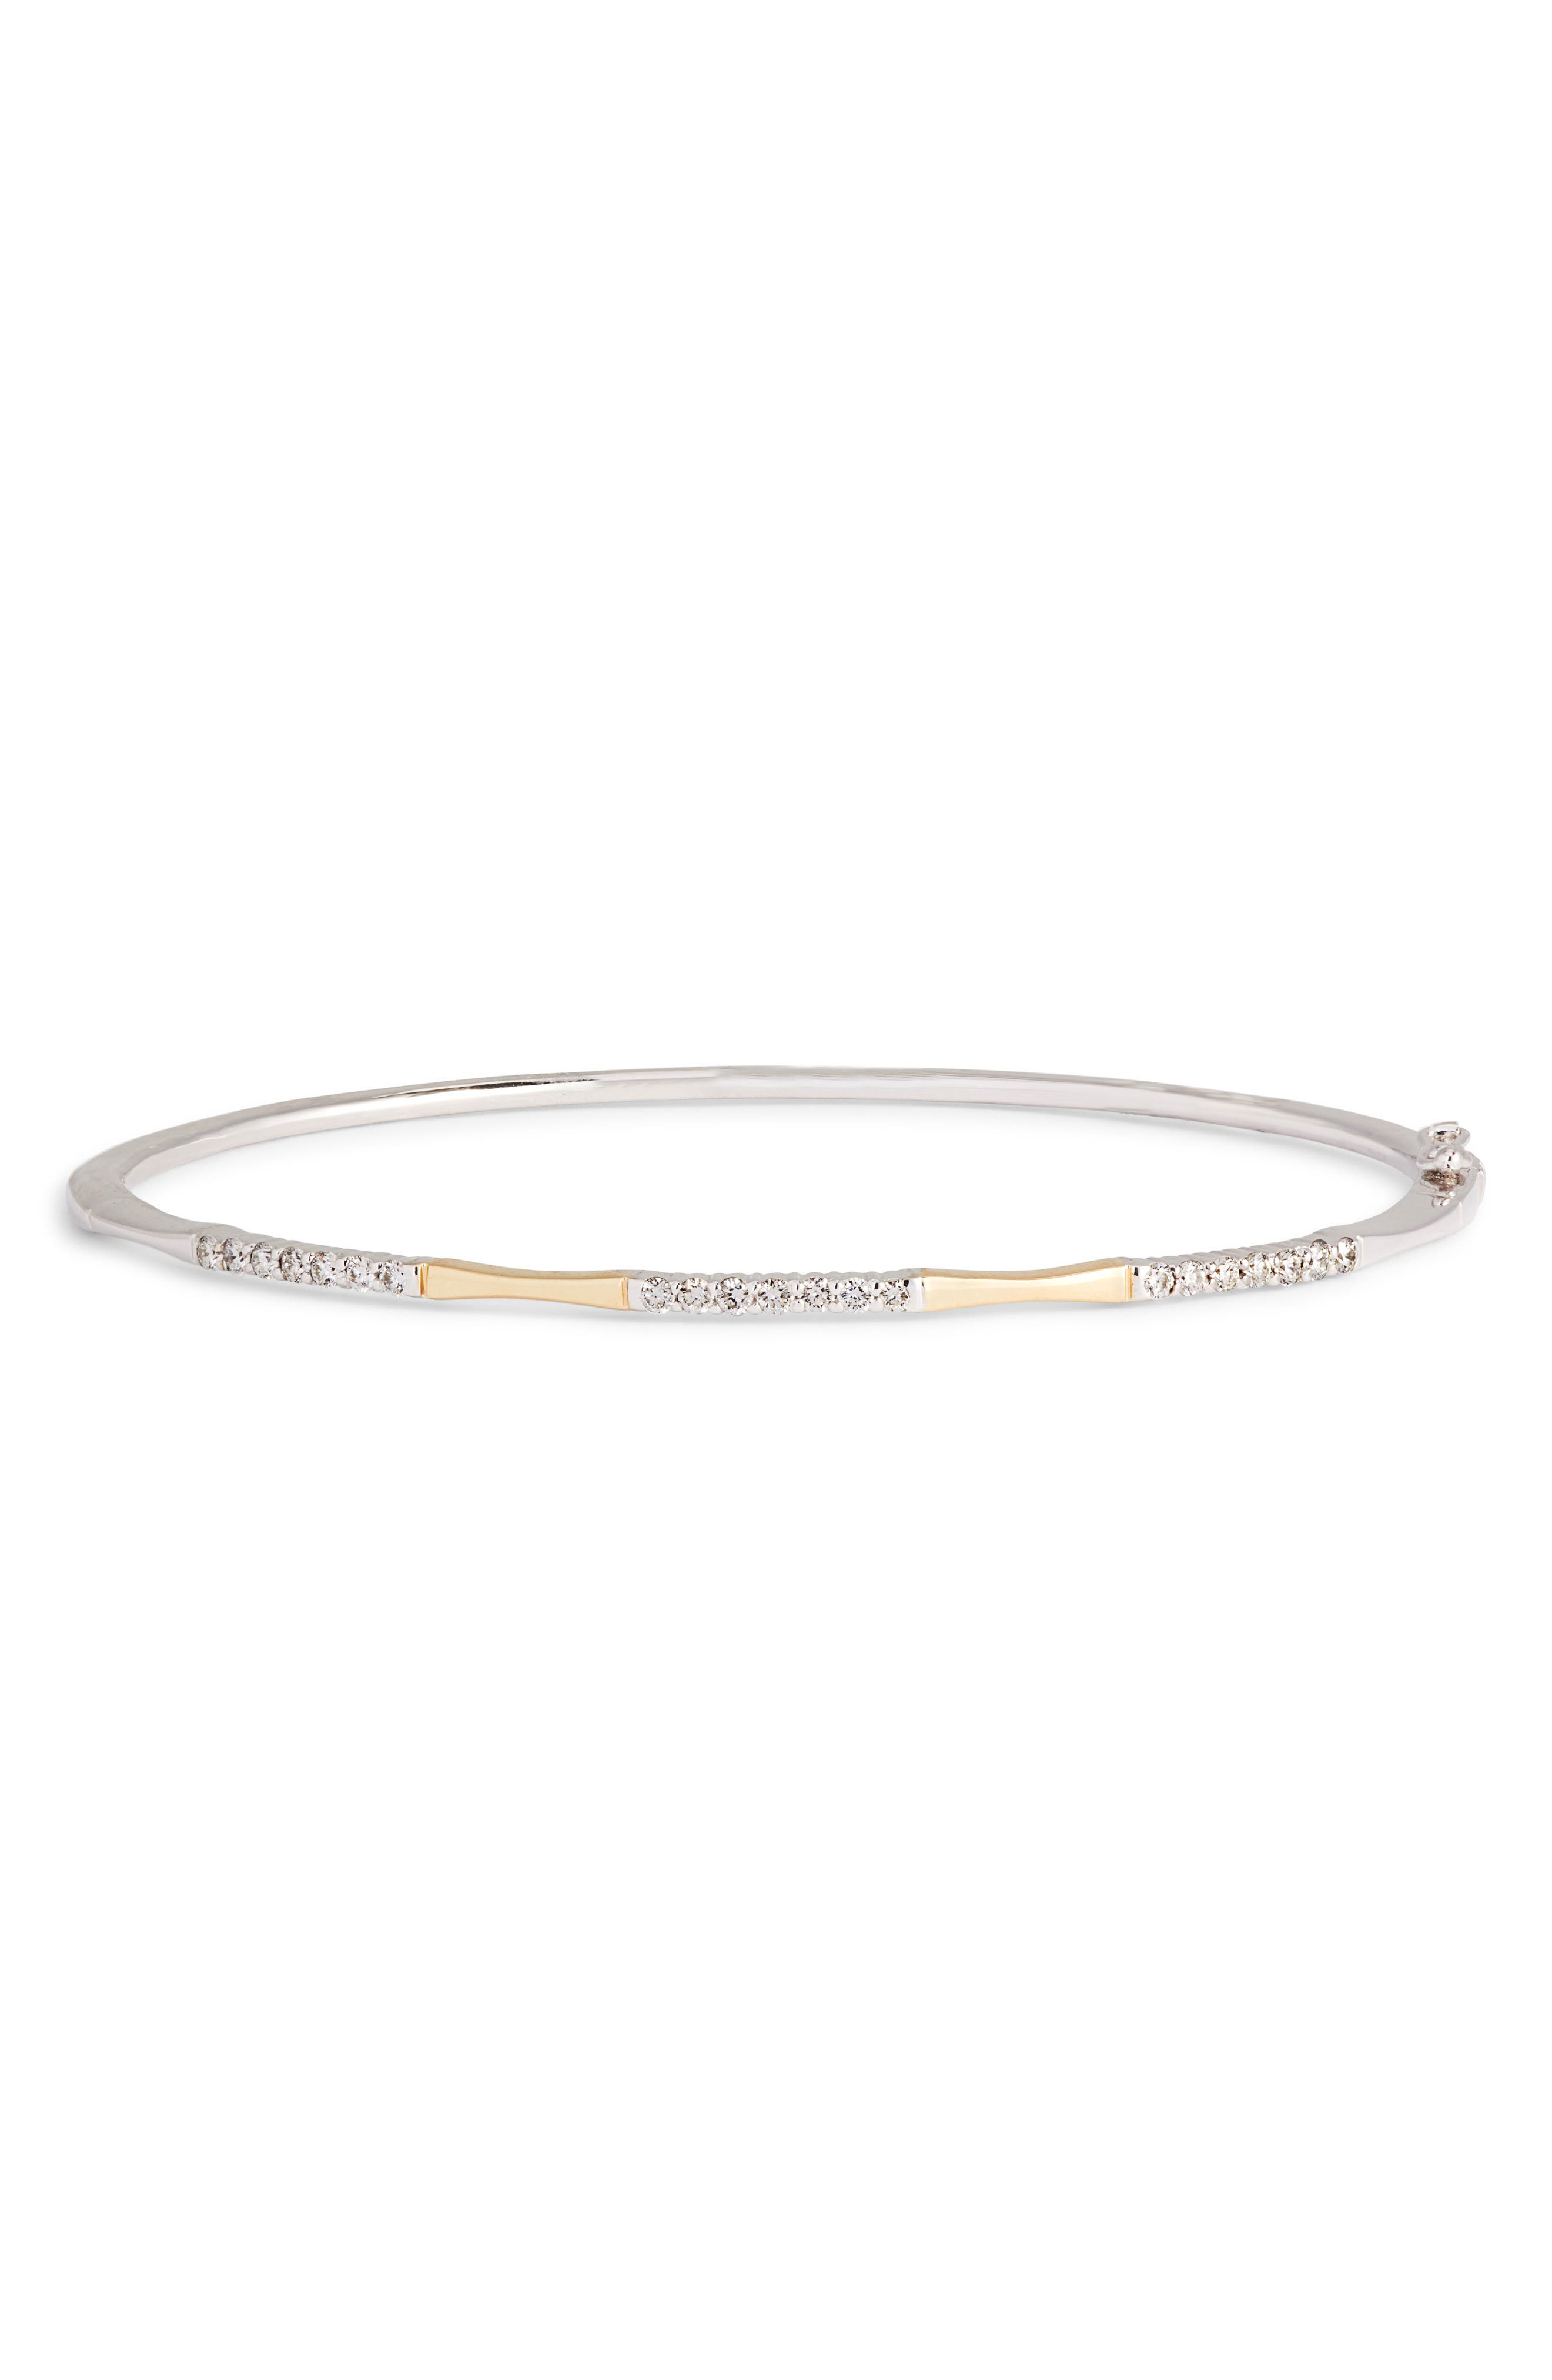 Two-Tone Diamond Station Bracelet,                         Main,                         color, Yellow Gold/ White Gold